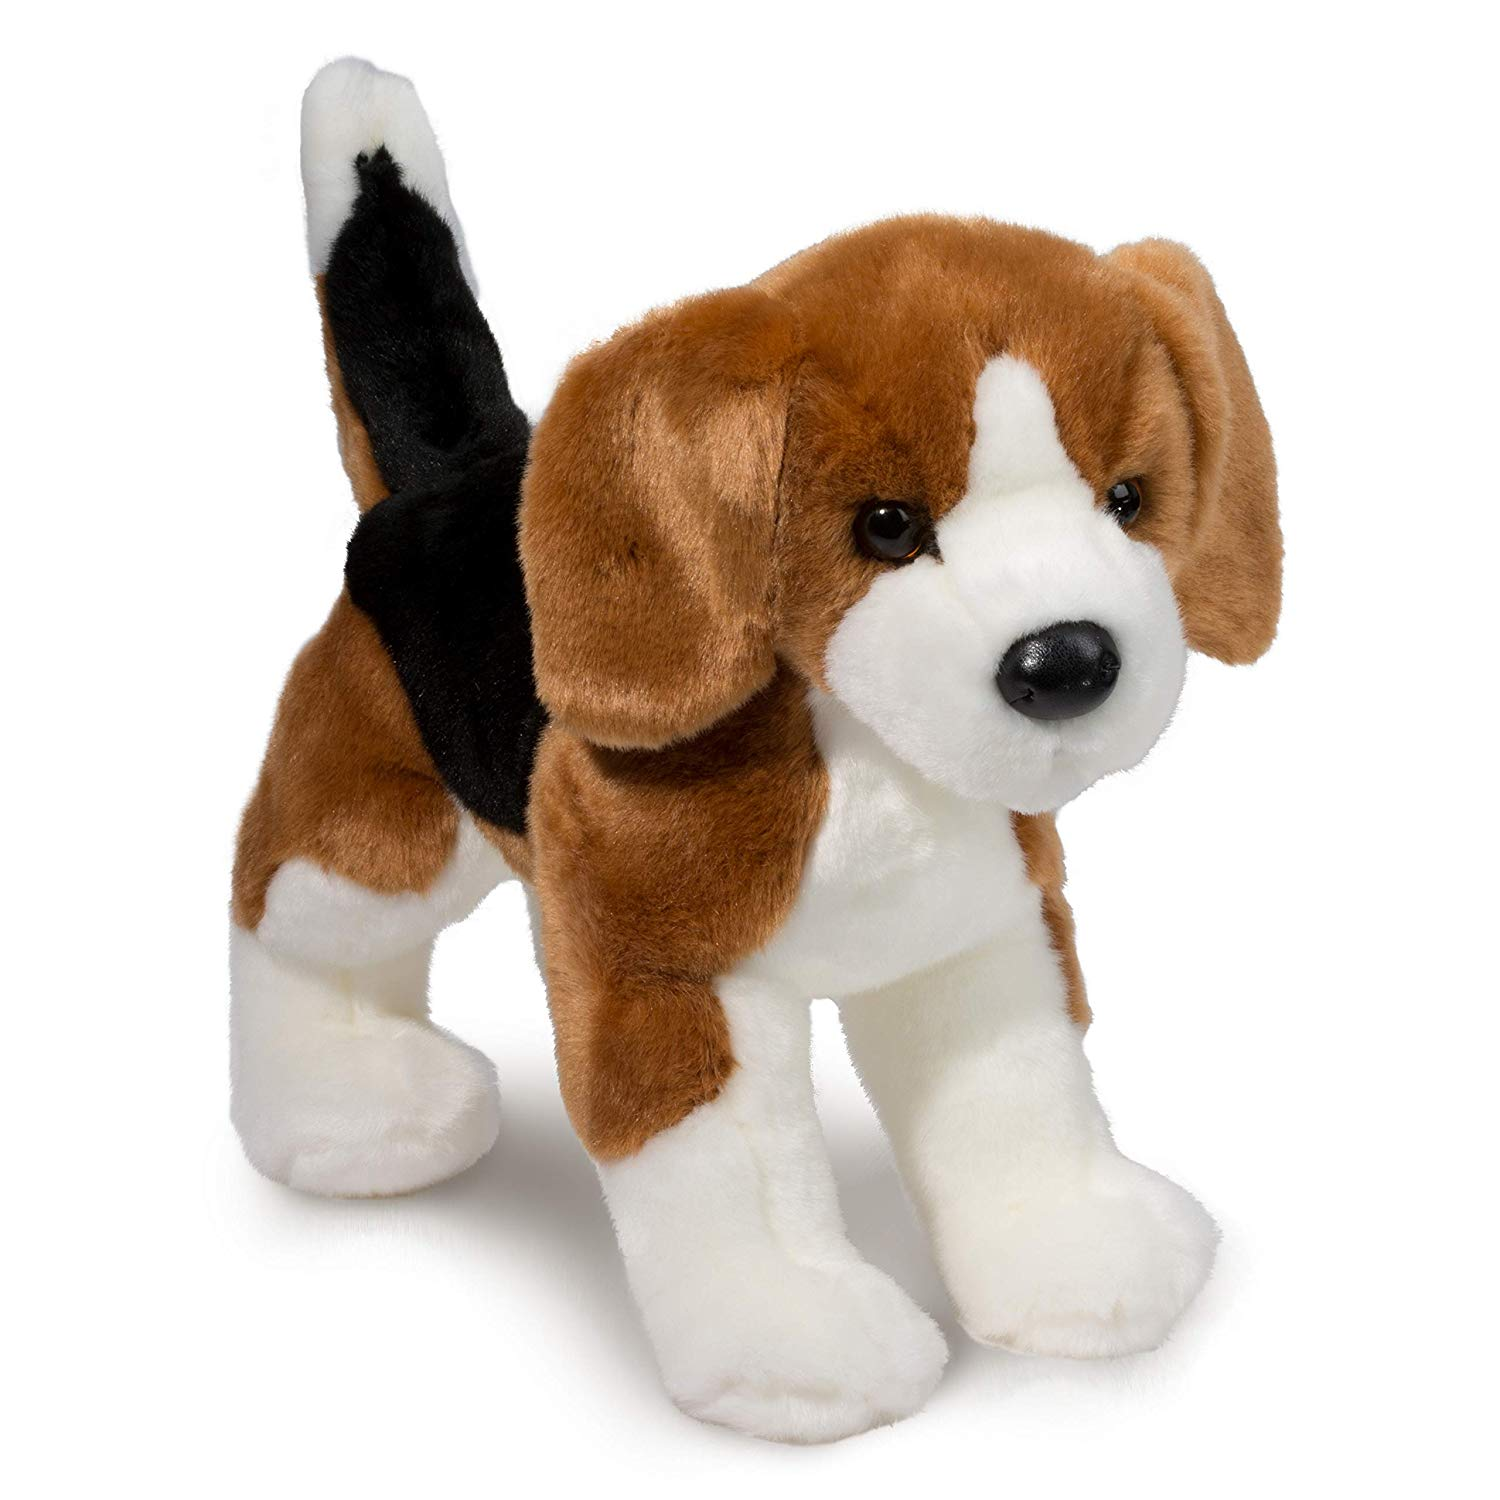 Cuddly Beagle ?- Fully Customisable Plush